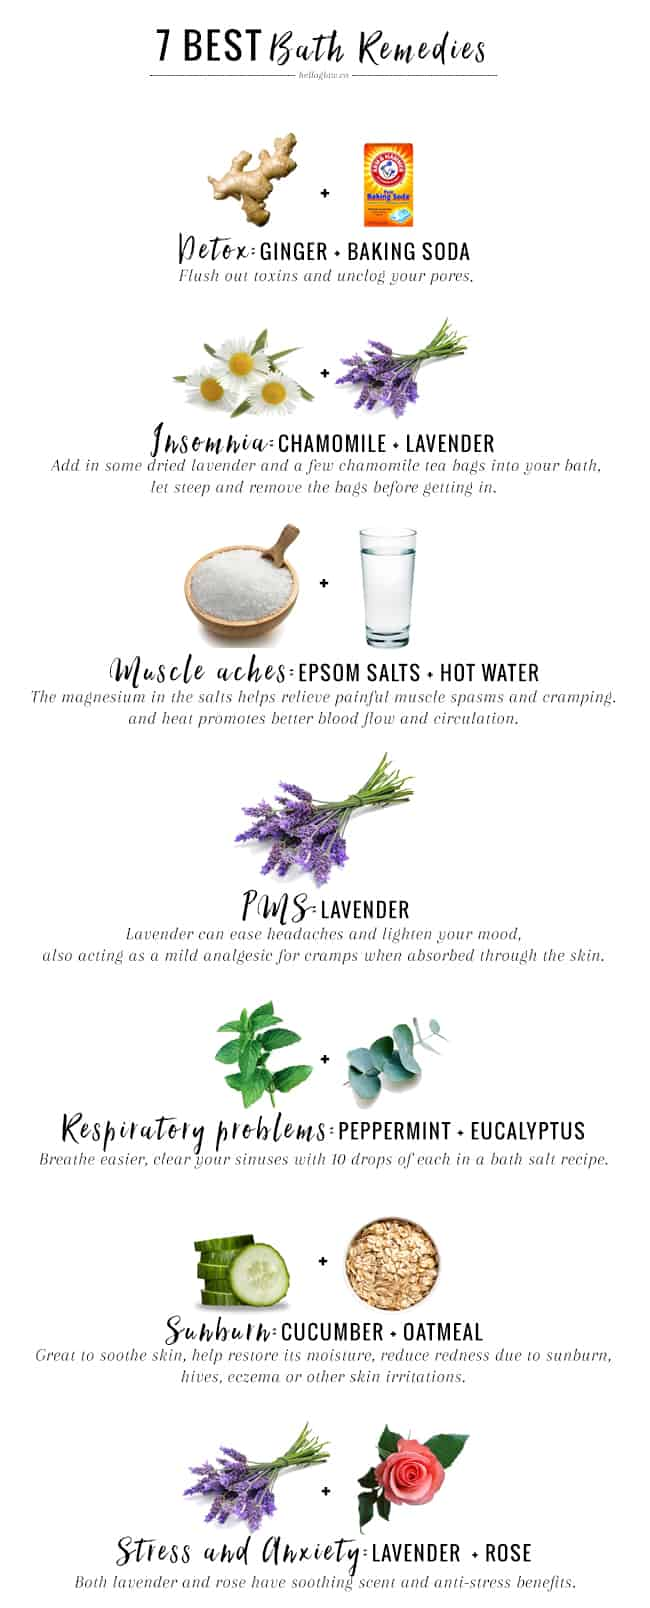 7 Best Bath Remedies For Everyday Ailments